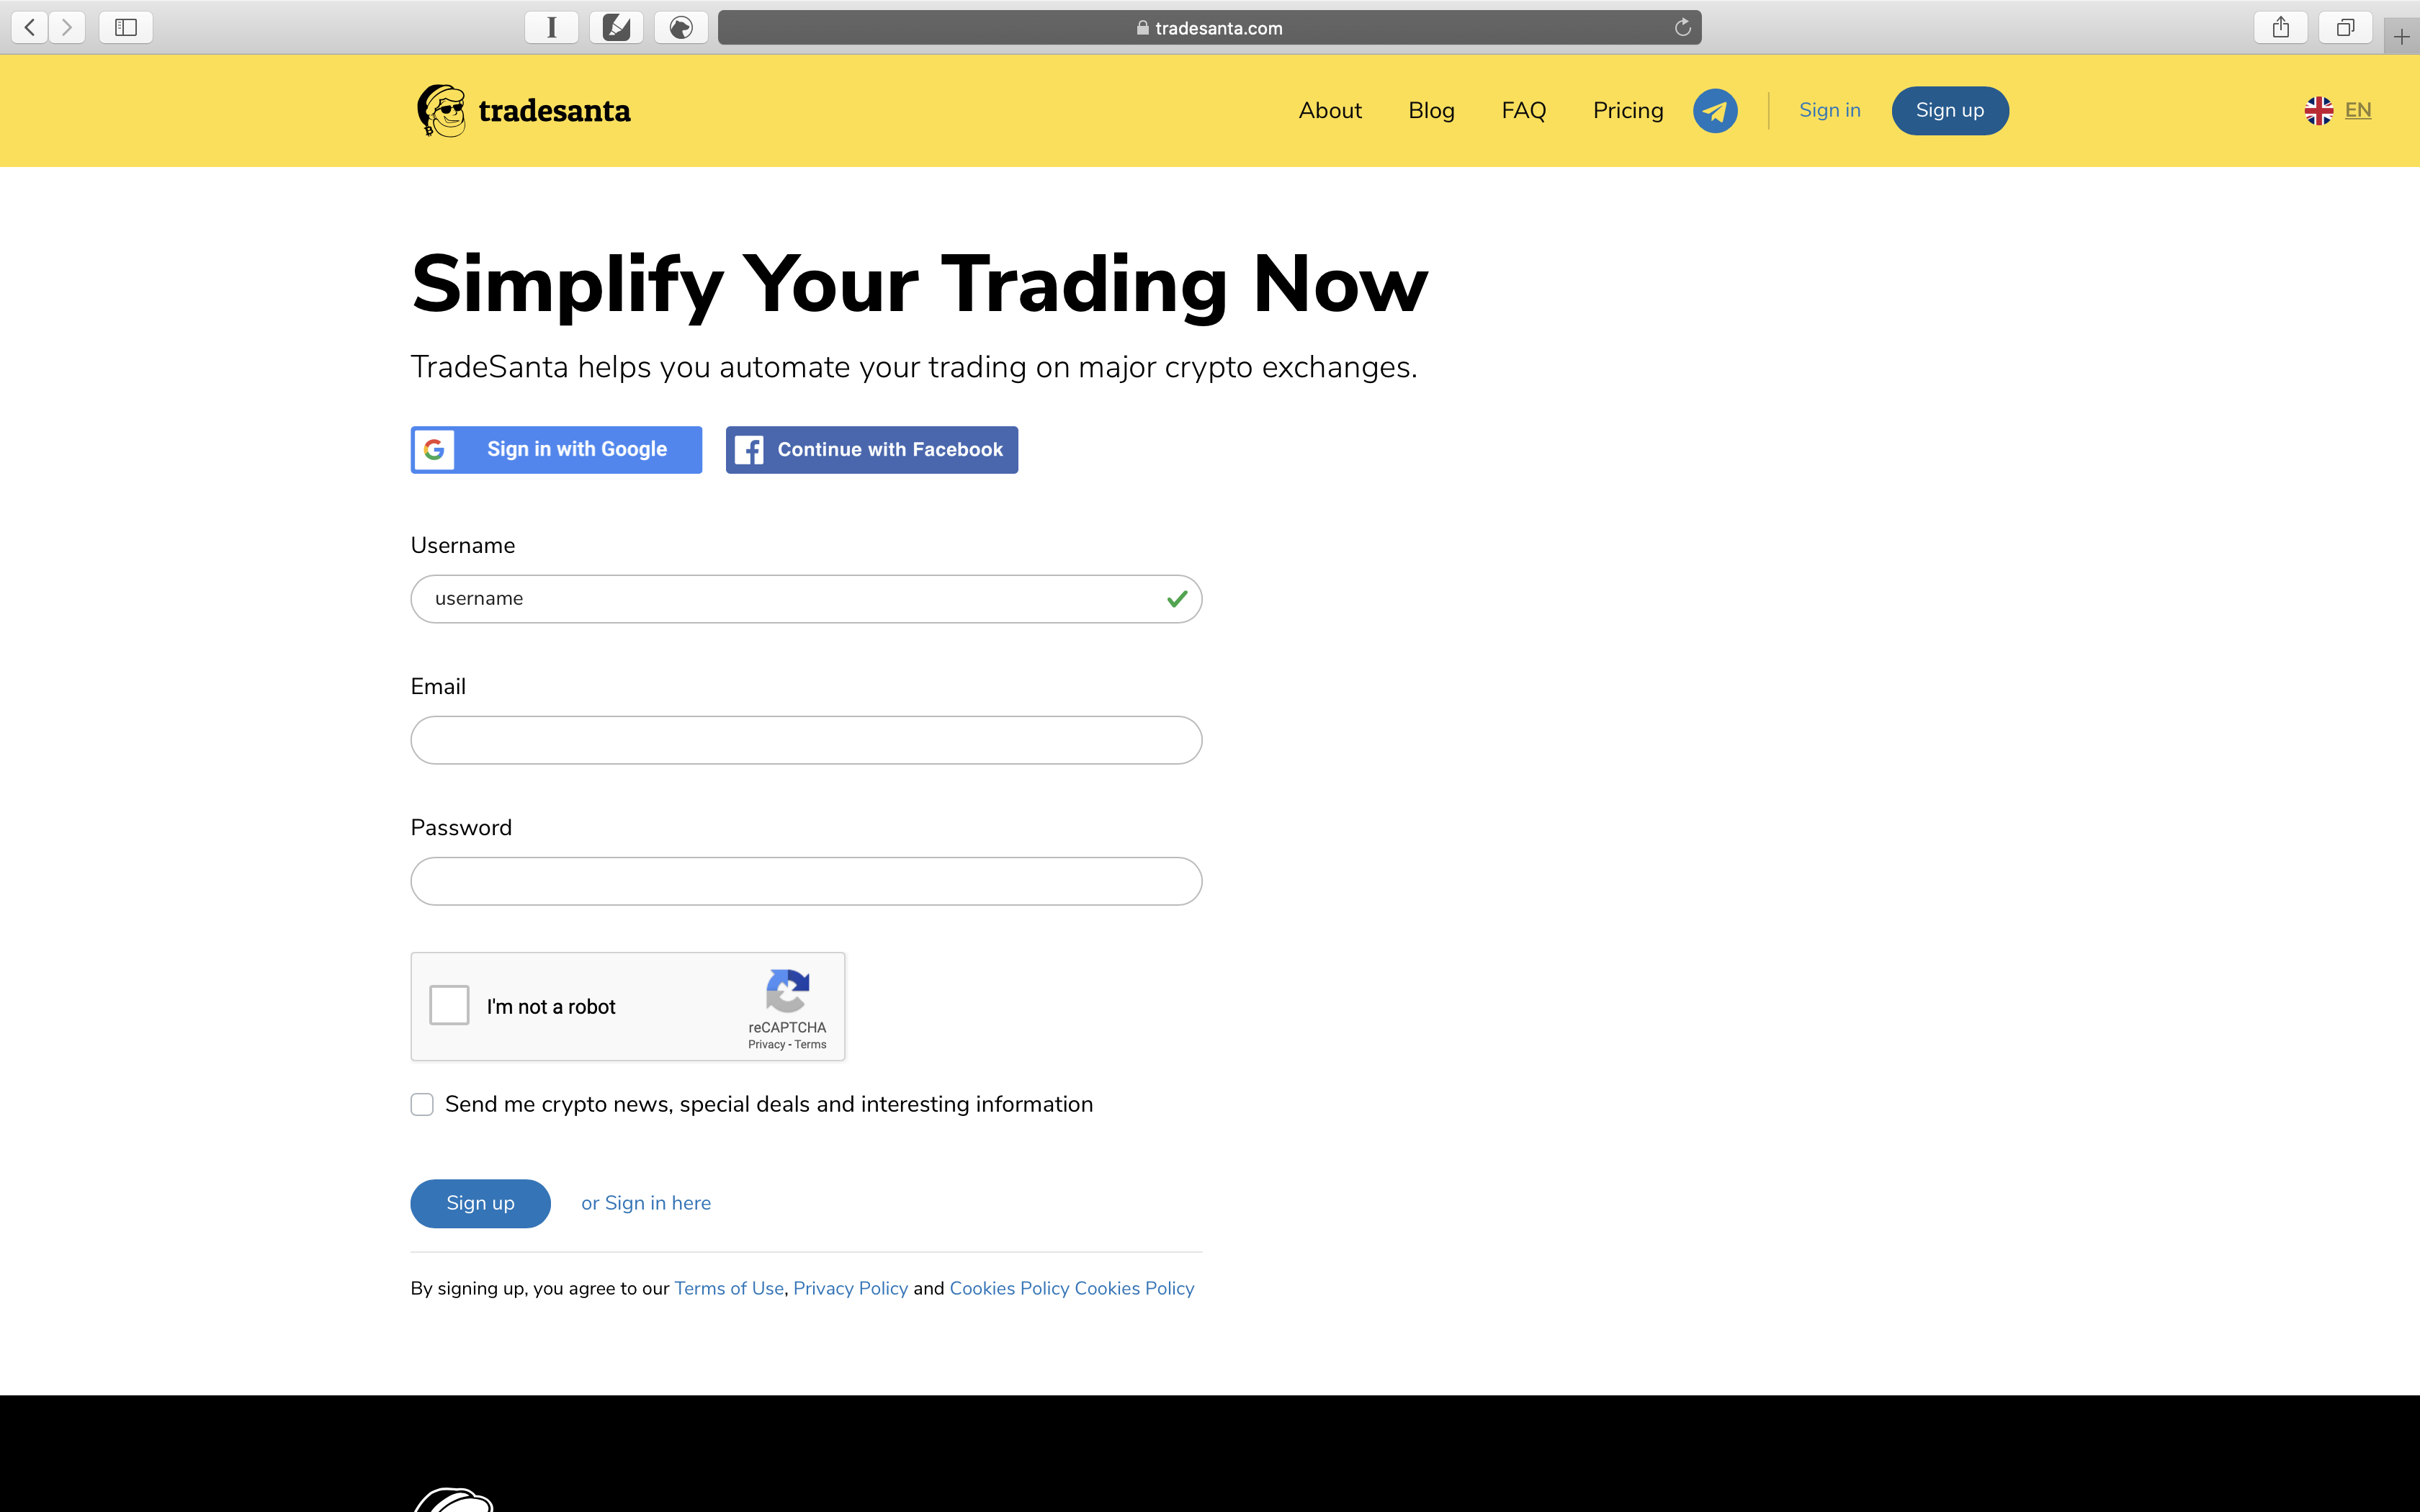 How to sign up on TradeSanta